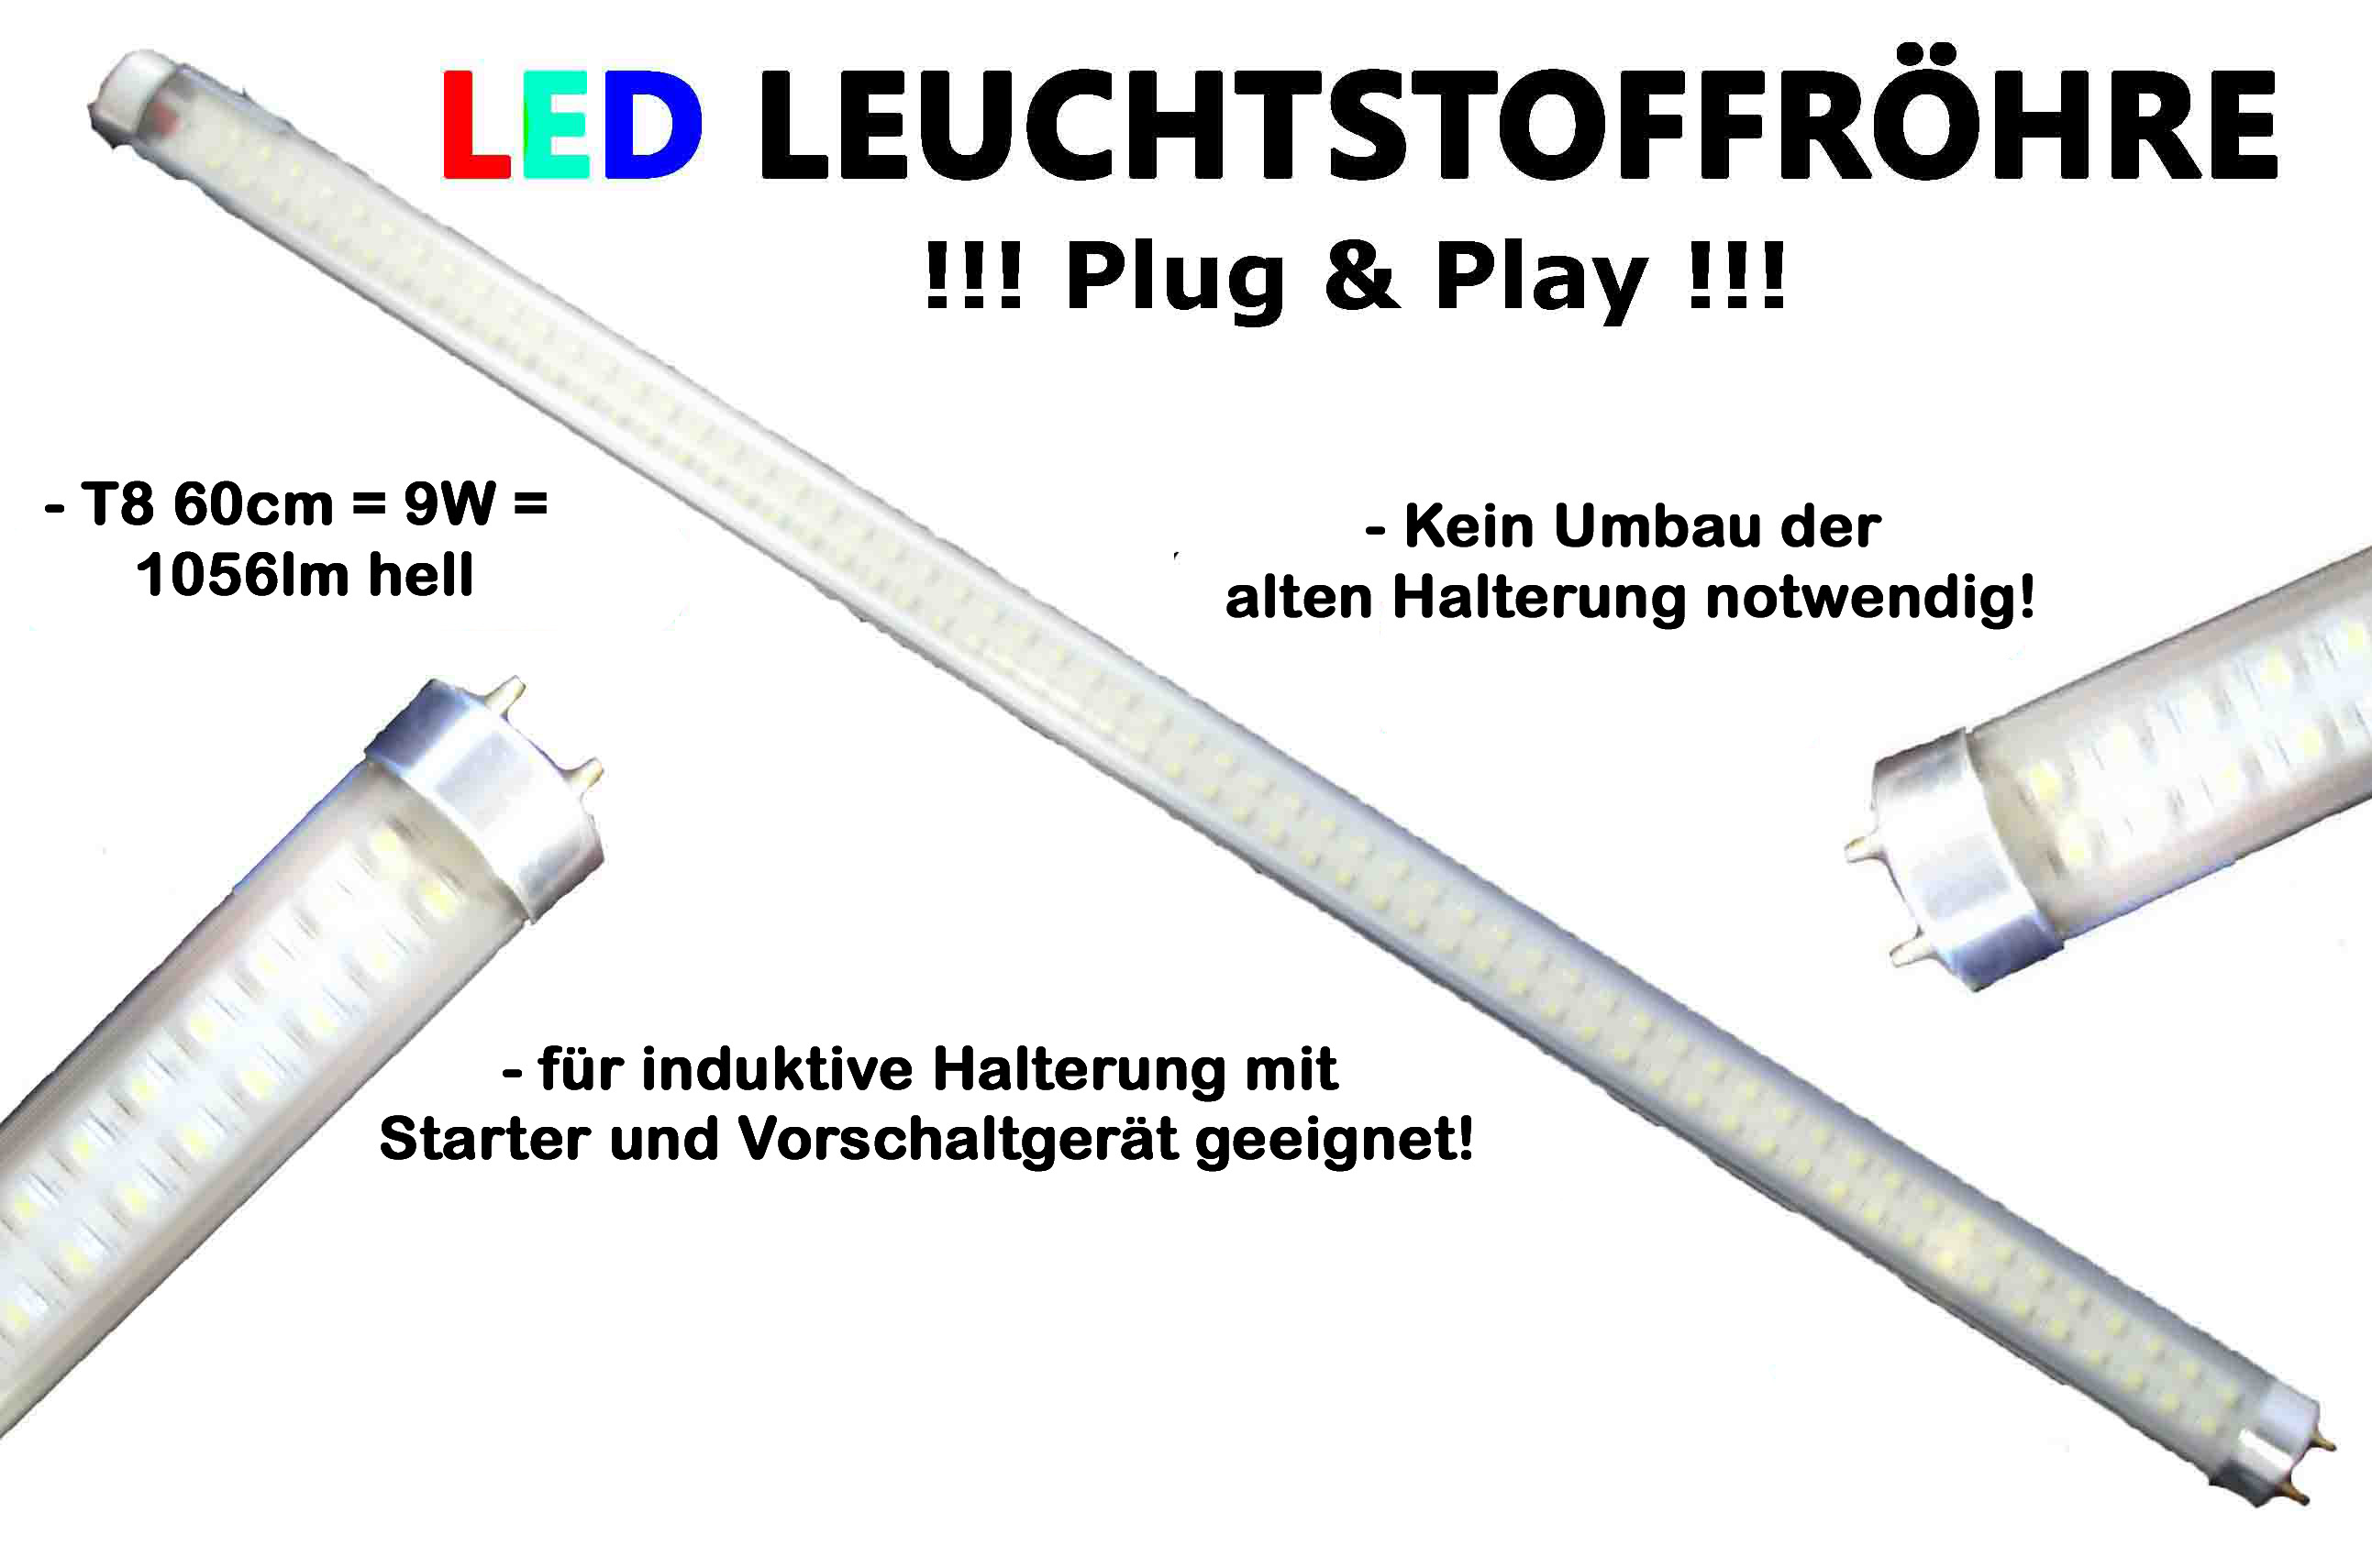 led r hre 60cm t8 g13 leuchtstoffr hre 9w 1056lm weiss kein umbau n tig ebay. Black Bedroom Furniture Sets. Home Design Ideas